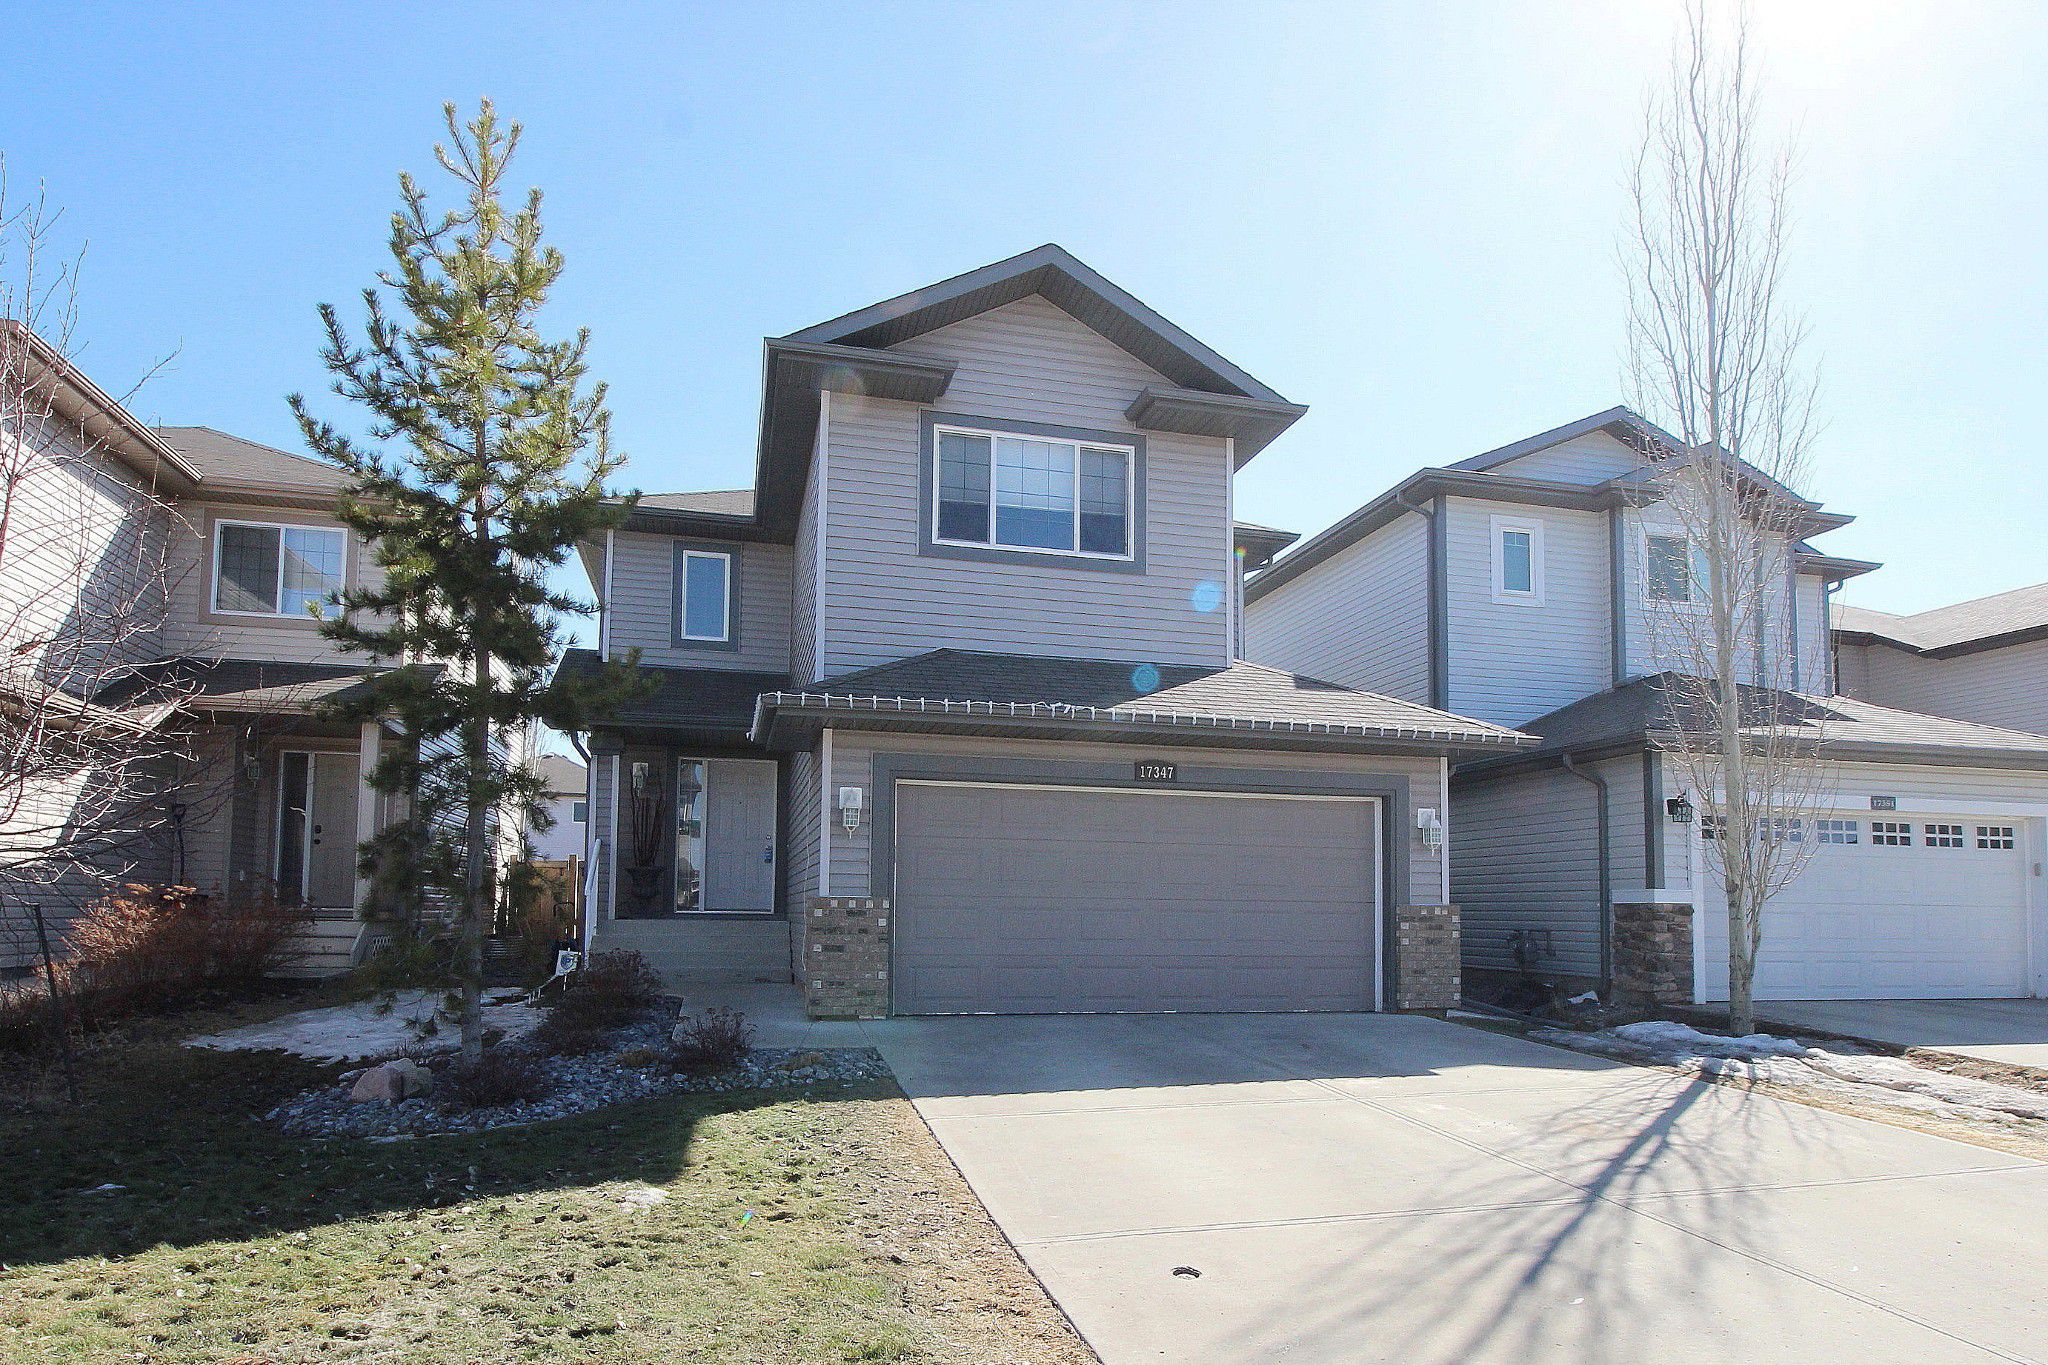 Main Photo: 17347 7A Avenue in EDMONTON: House for sale